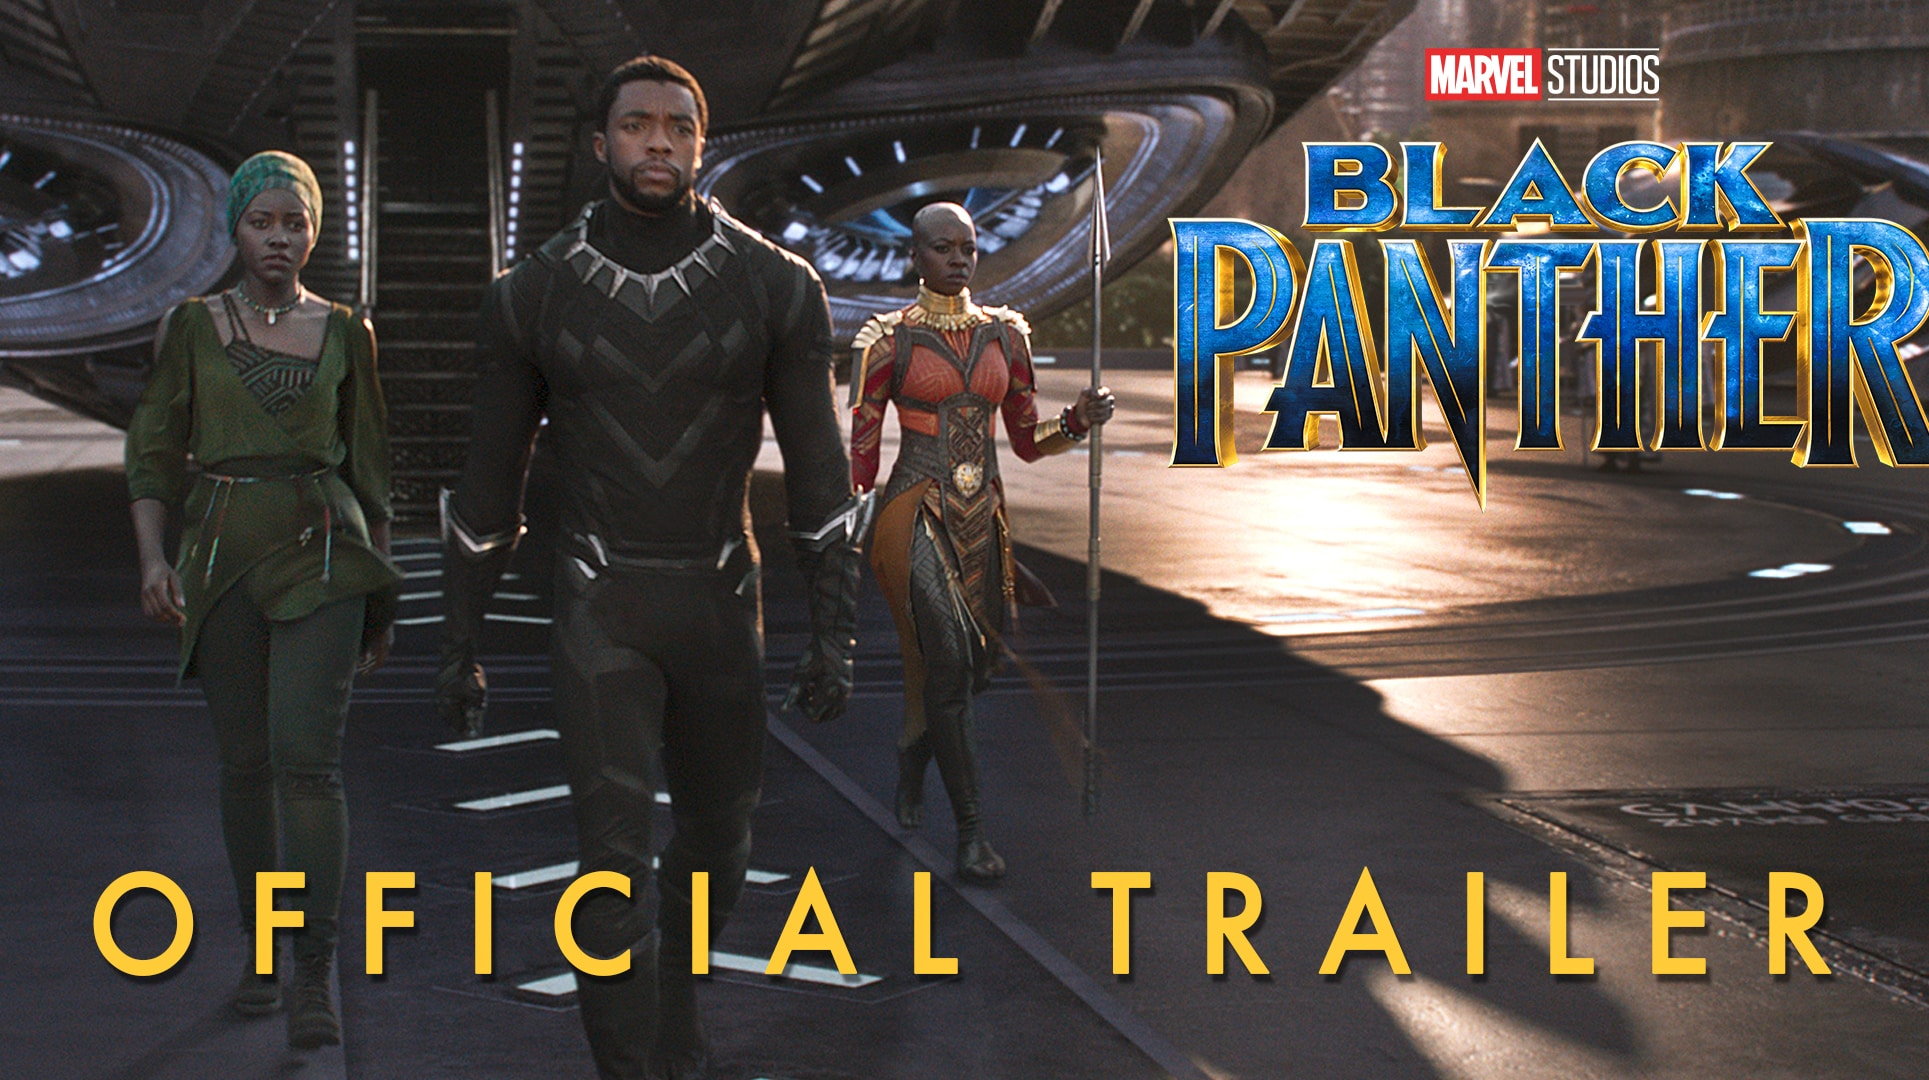 Marvel Studios Black Panther Official Trailer